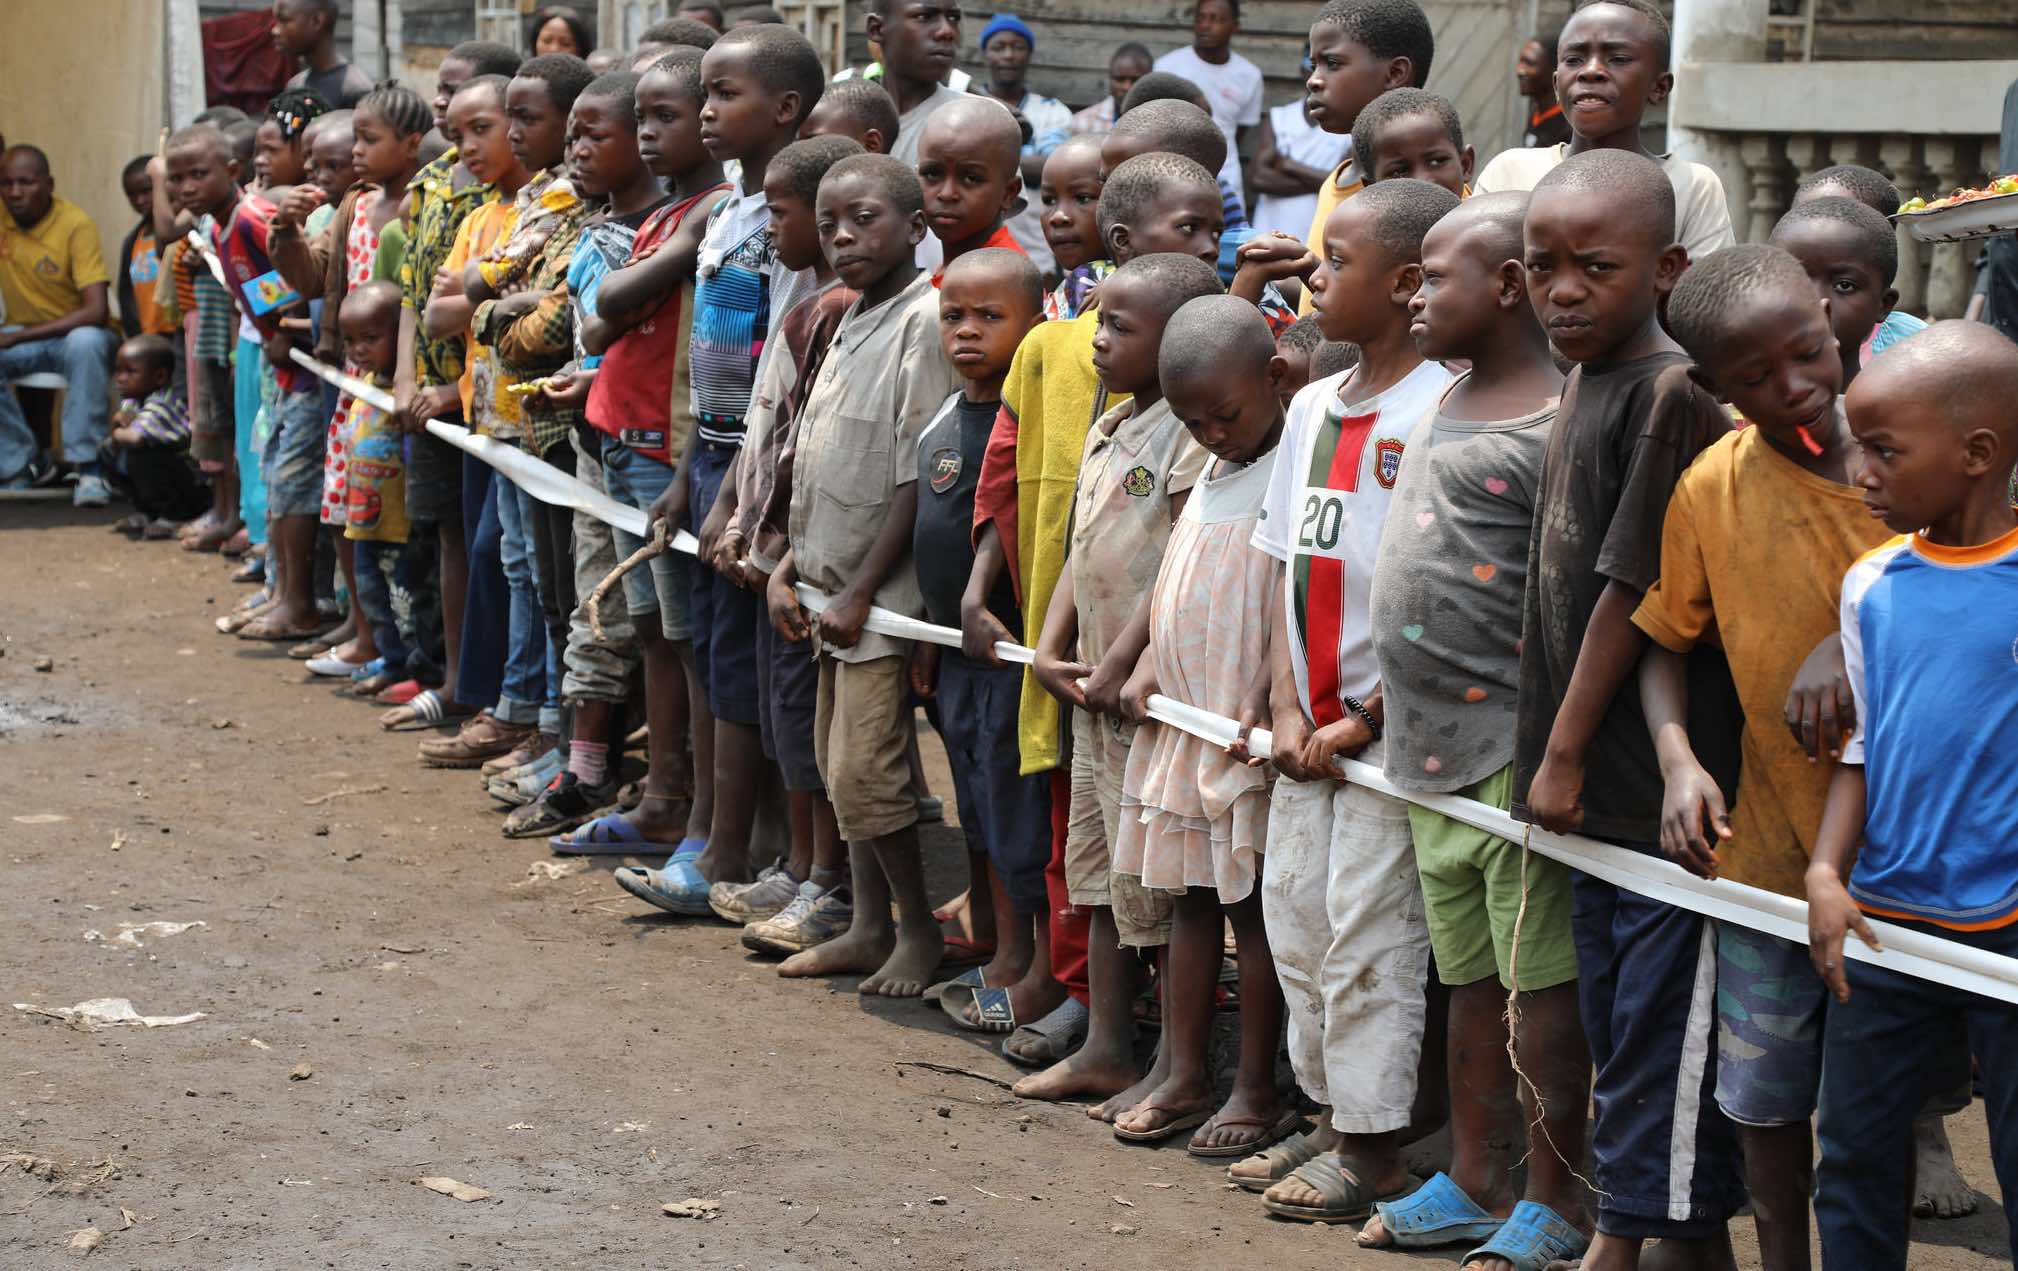 Children lined up for community awareness program with UN peacekeepers in Congo (Photo: MONACO Photos/Flickr)